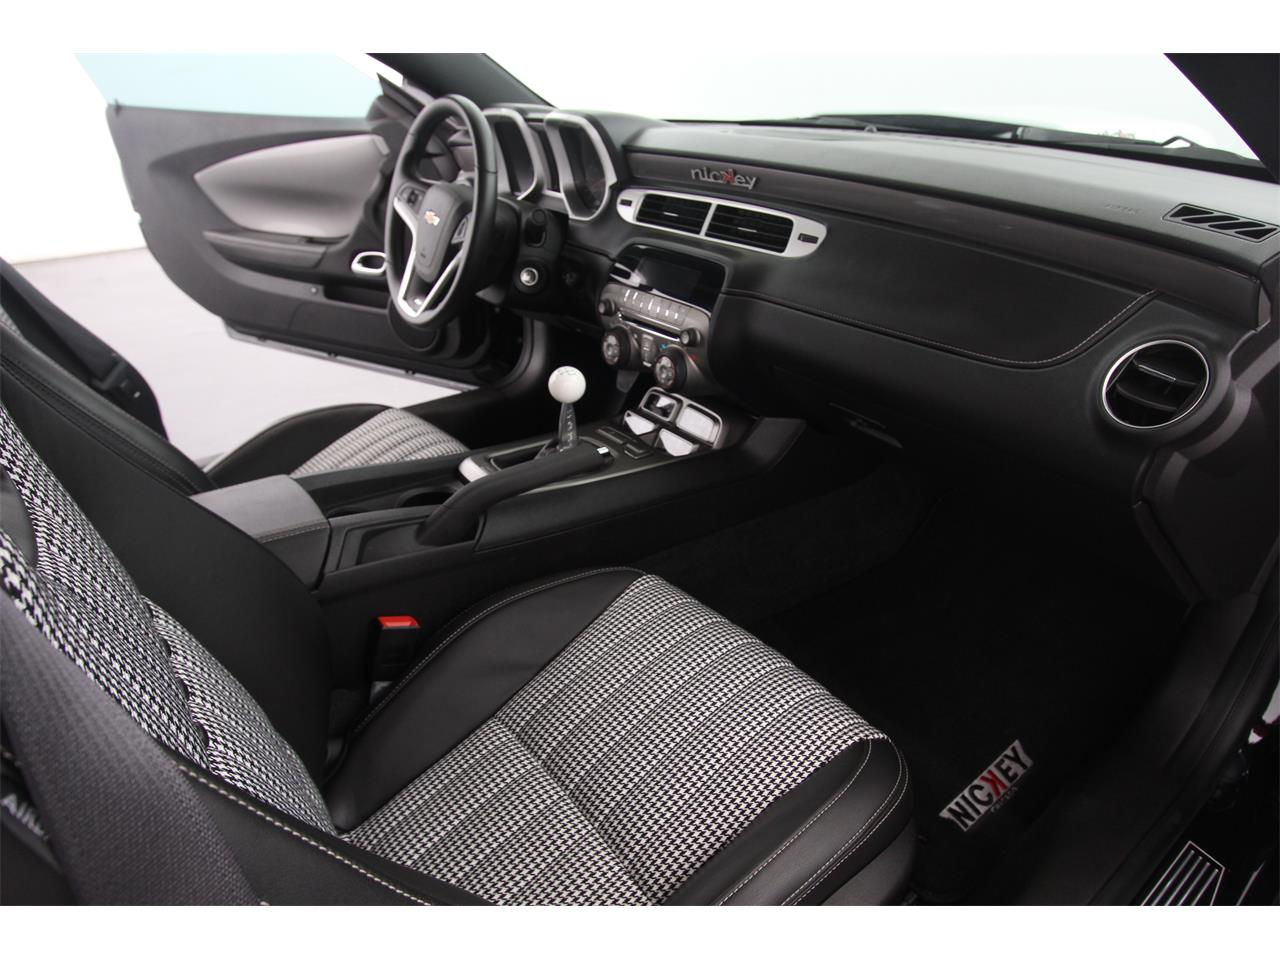 Large Picture of '12 Chevrolet Camaro located in Illinois - $52,500.00 - JHYN